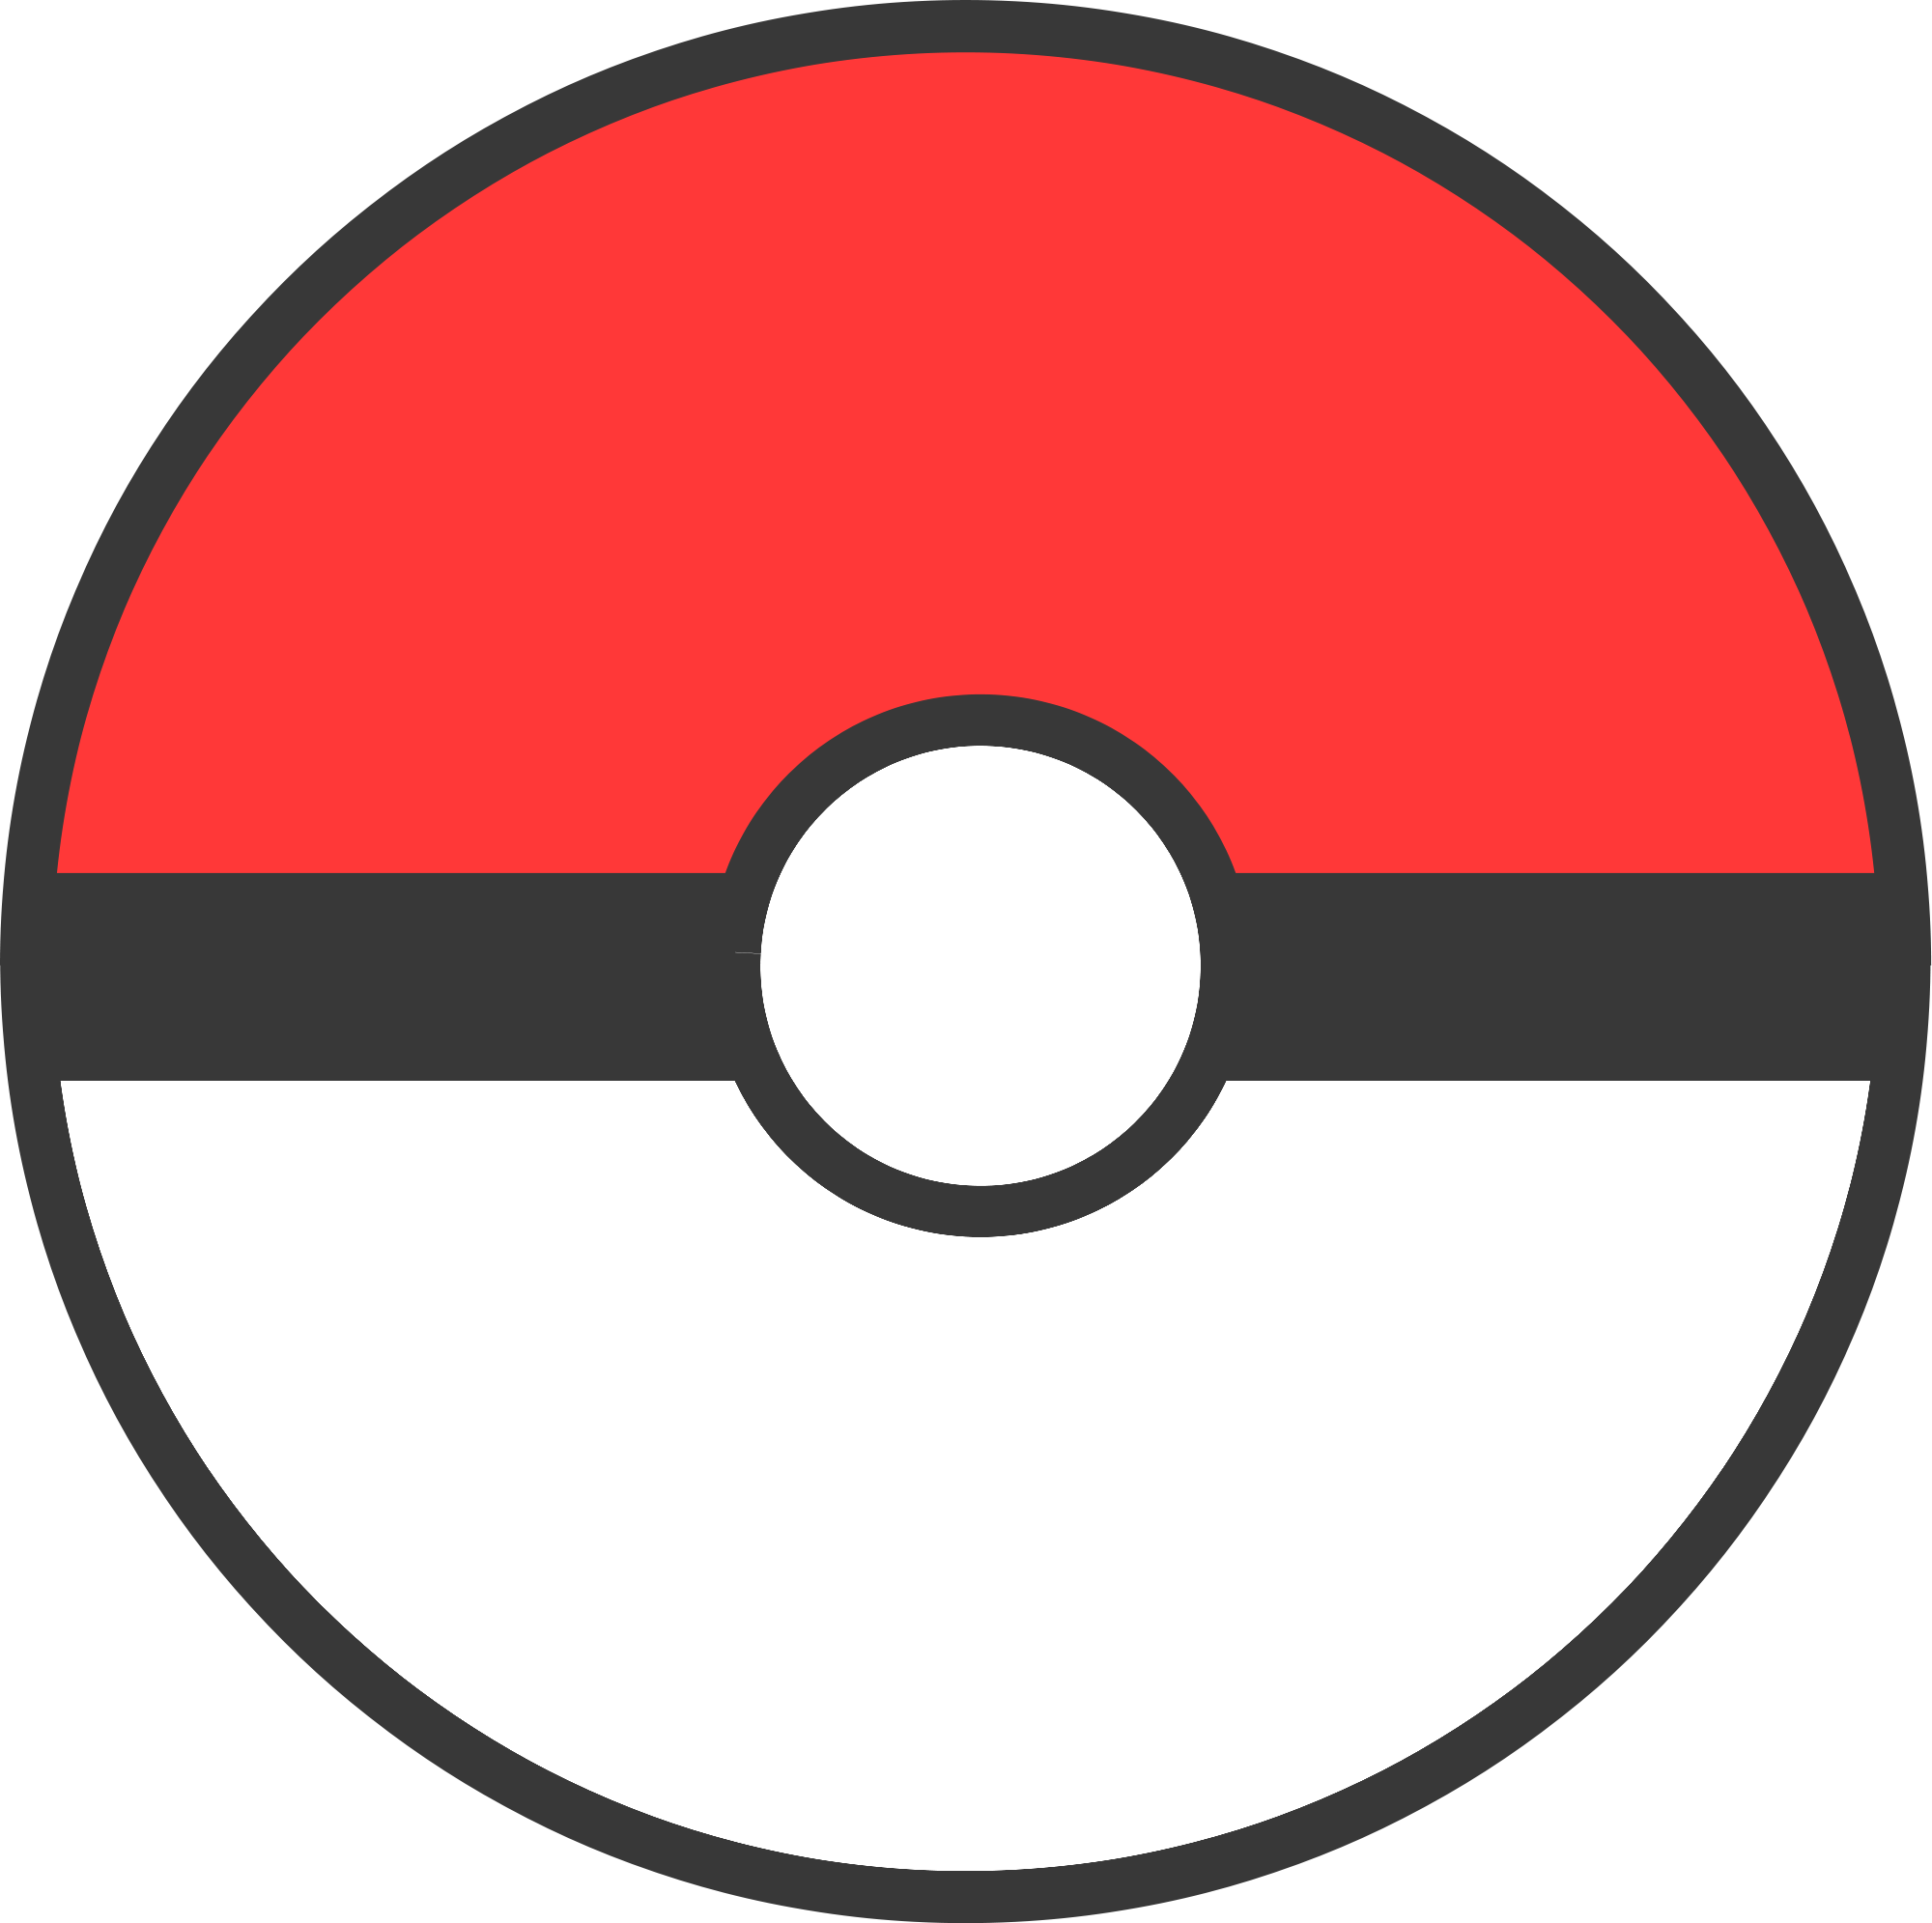 Ball png images download. Pokeball clipart pokemon free